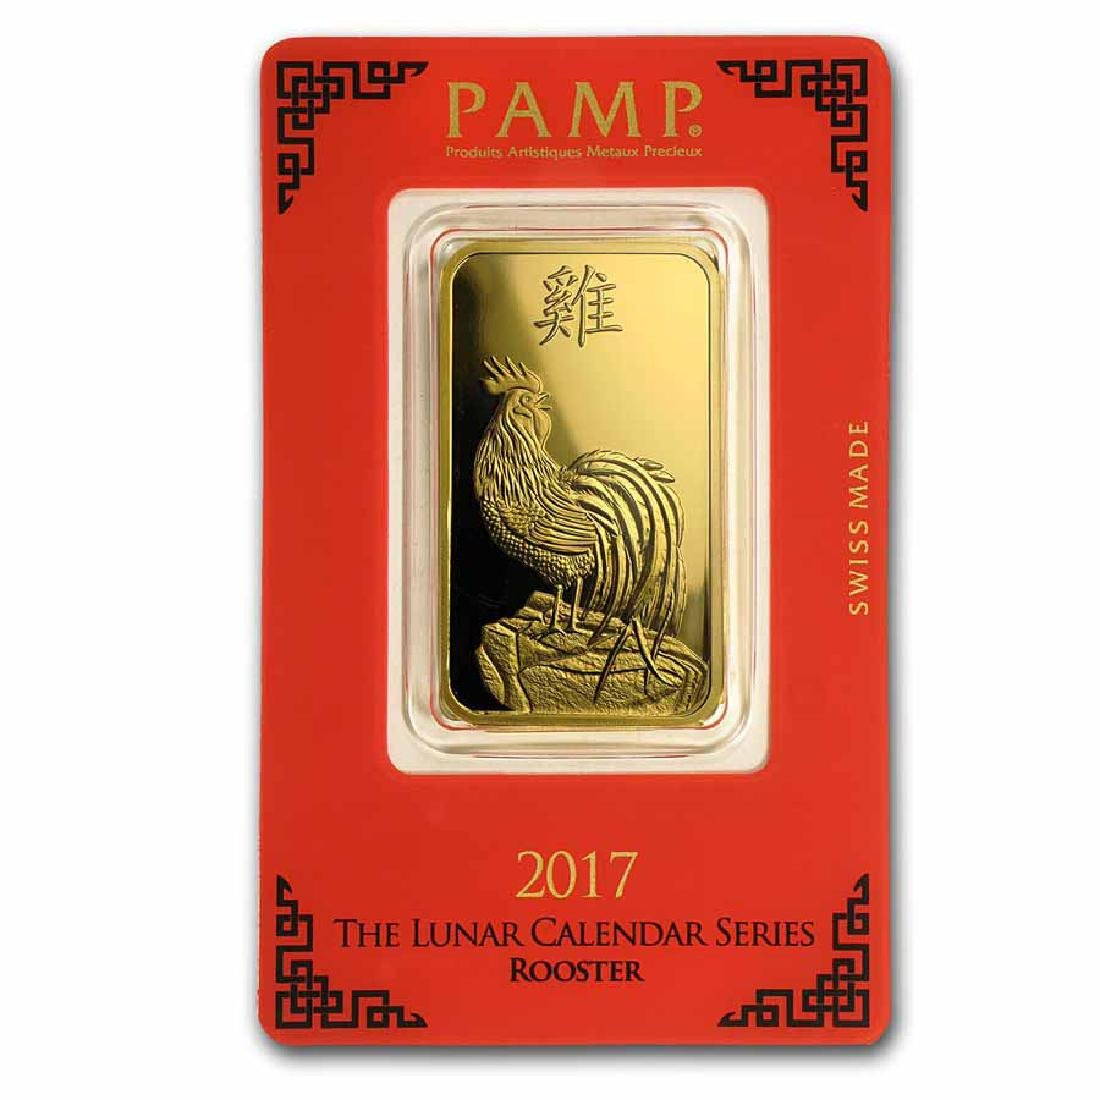 PAMP Suisse One Ounce Gold Bar - 2017 Rooster Design